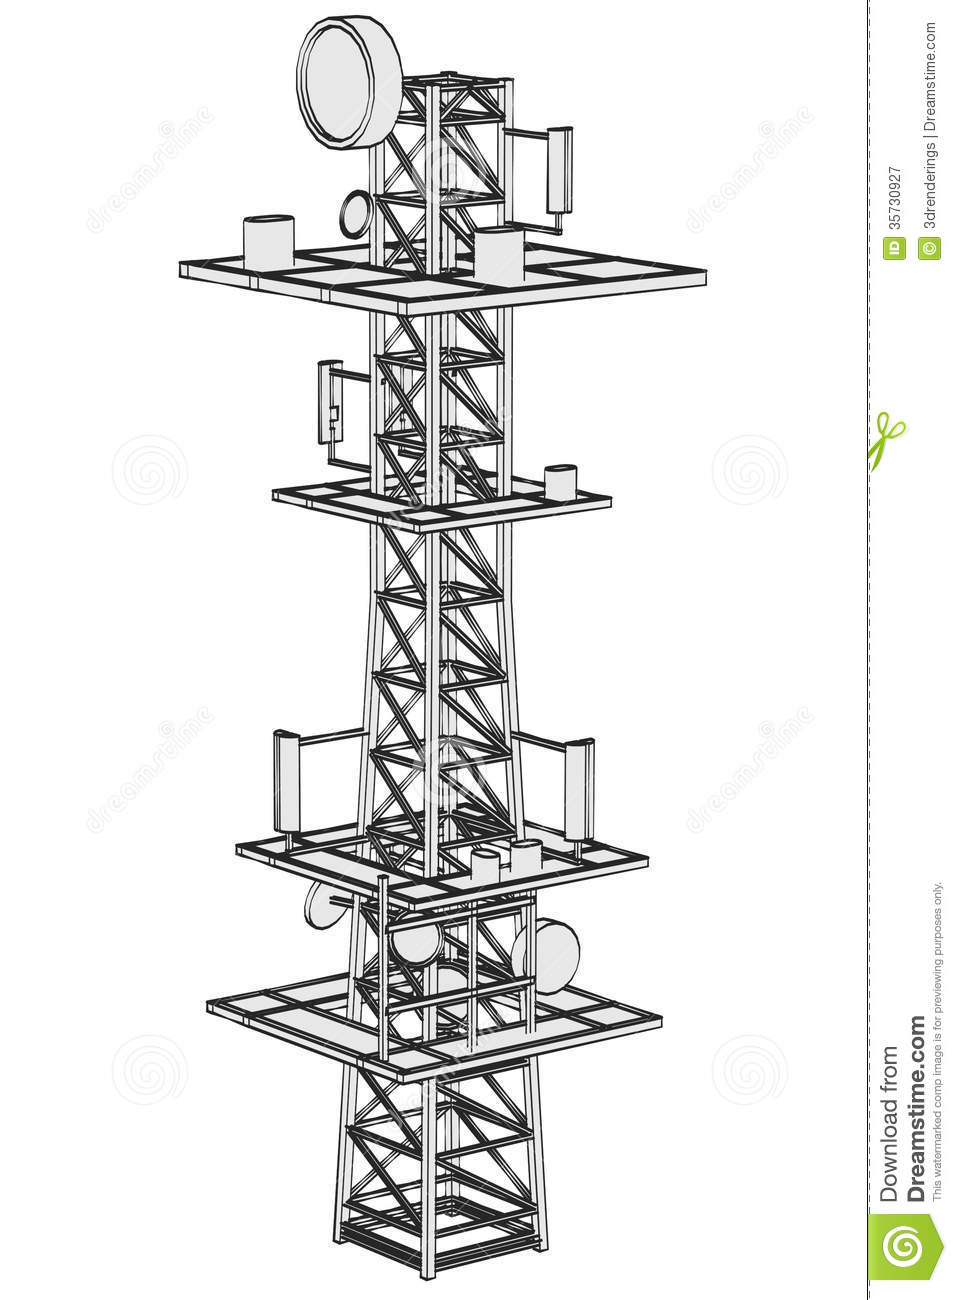 Image of gsm tower stock illustration  Illustration of connection